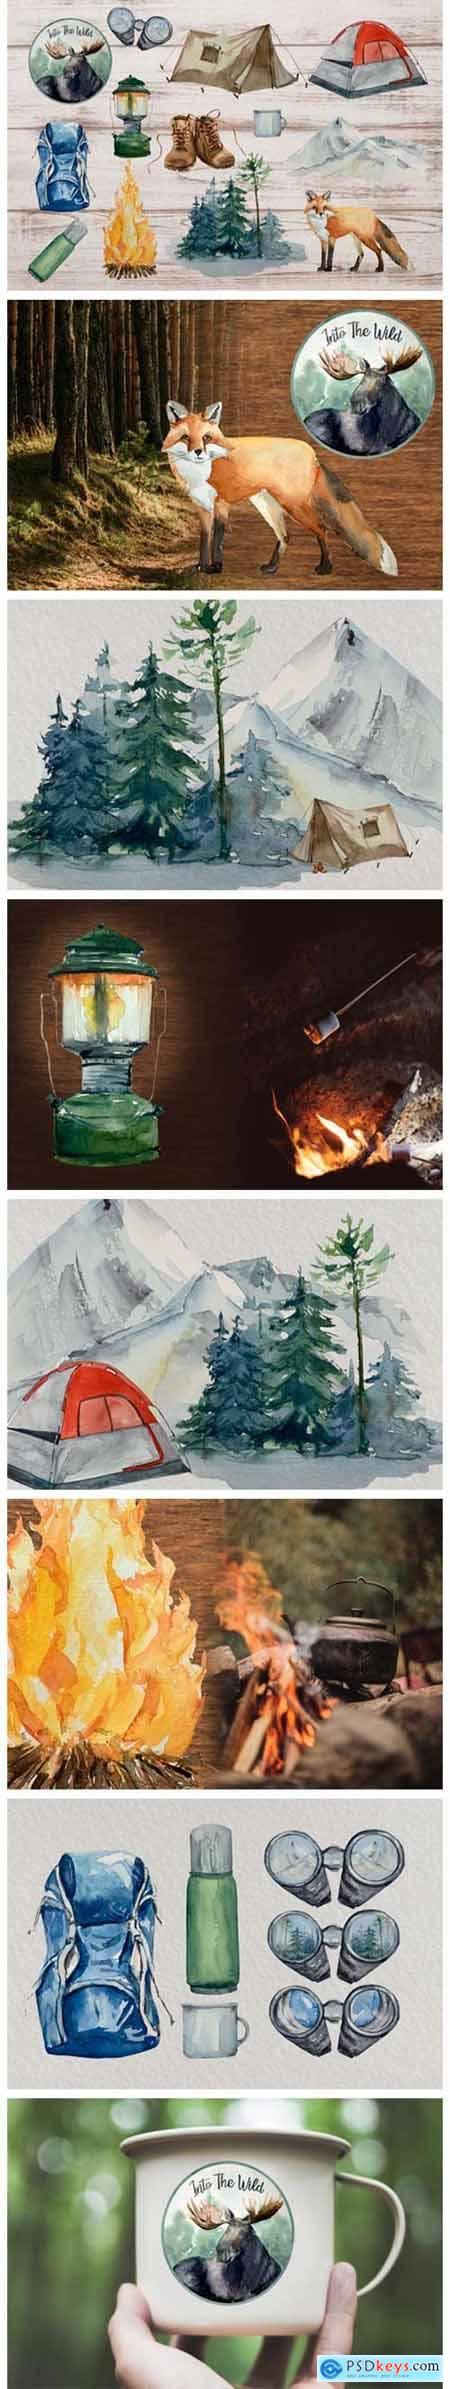 Adventure Clip Arts - Watercolor Set 6581074